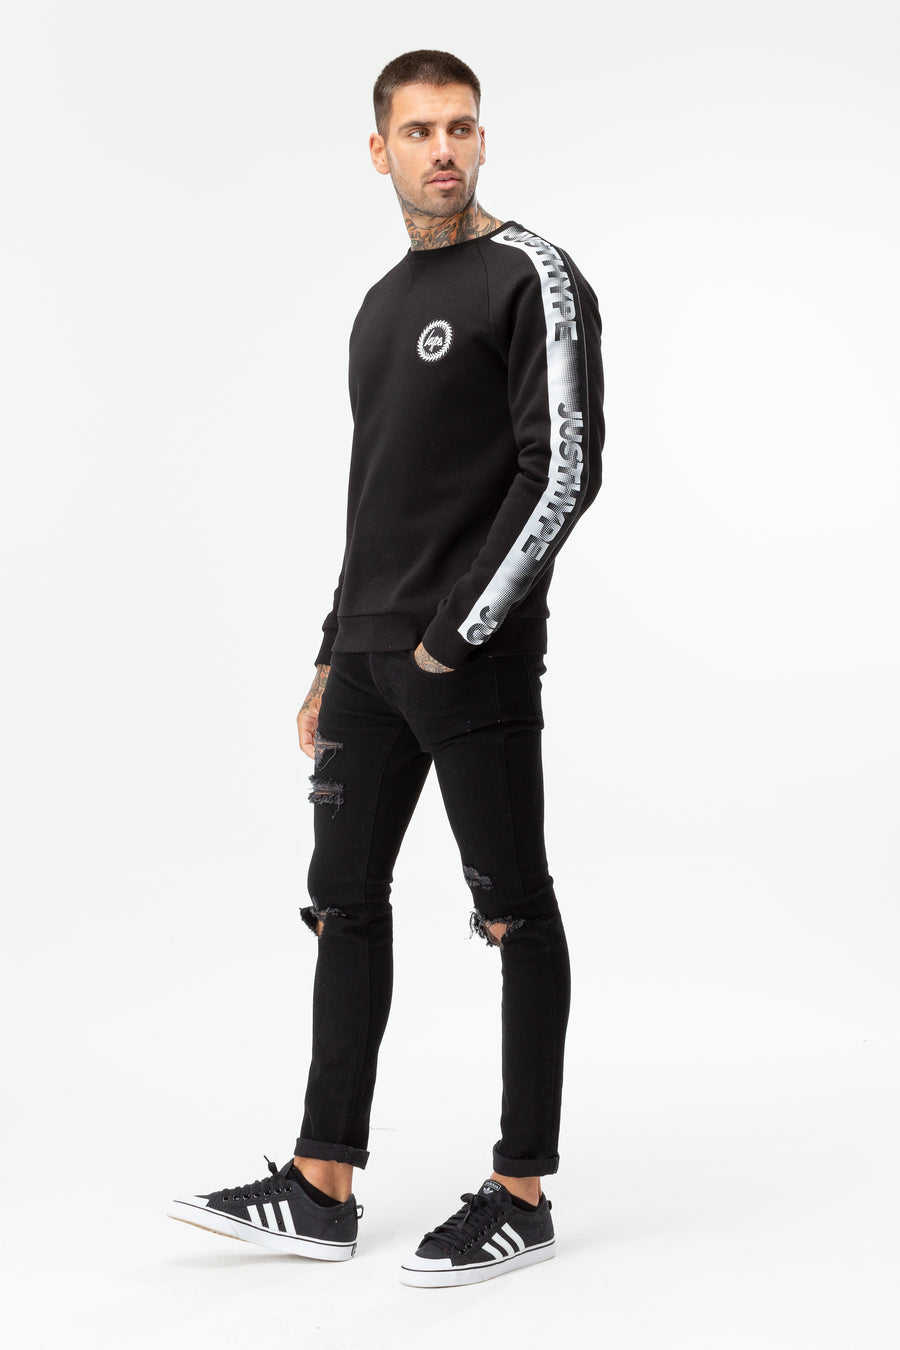 HYPE SPECKLE TAPE MEN'S CREW NECK